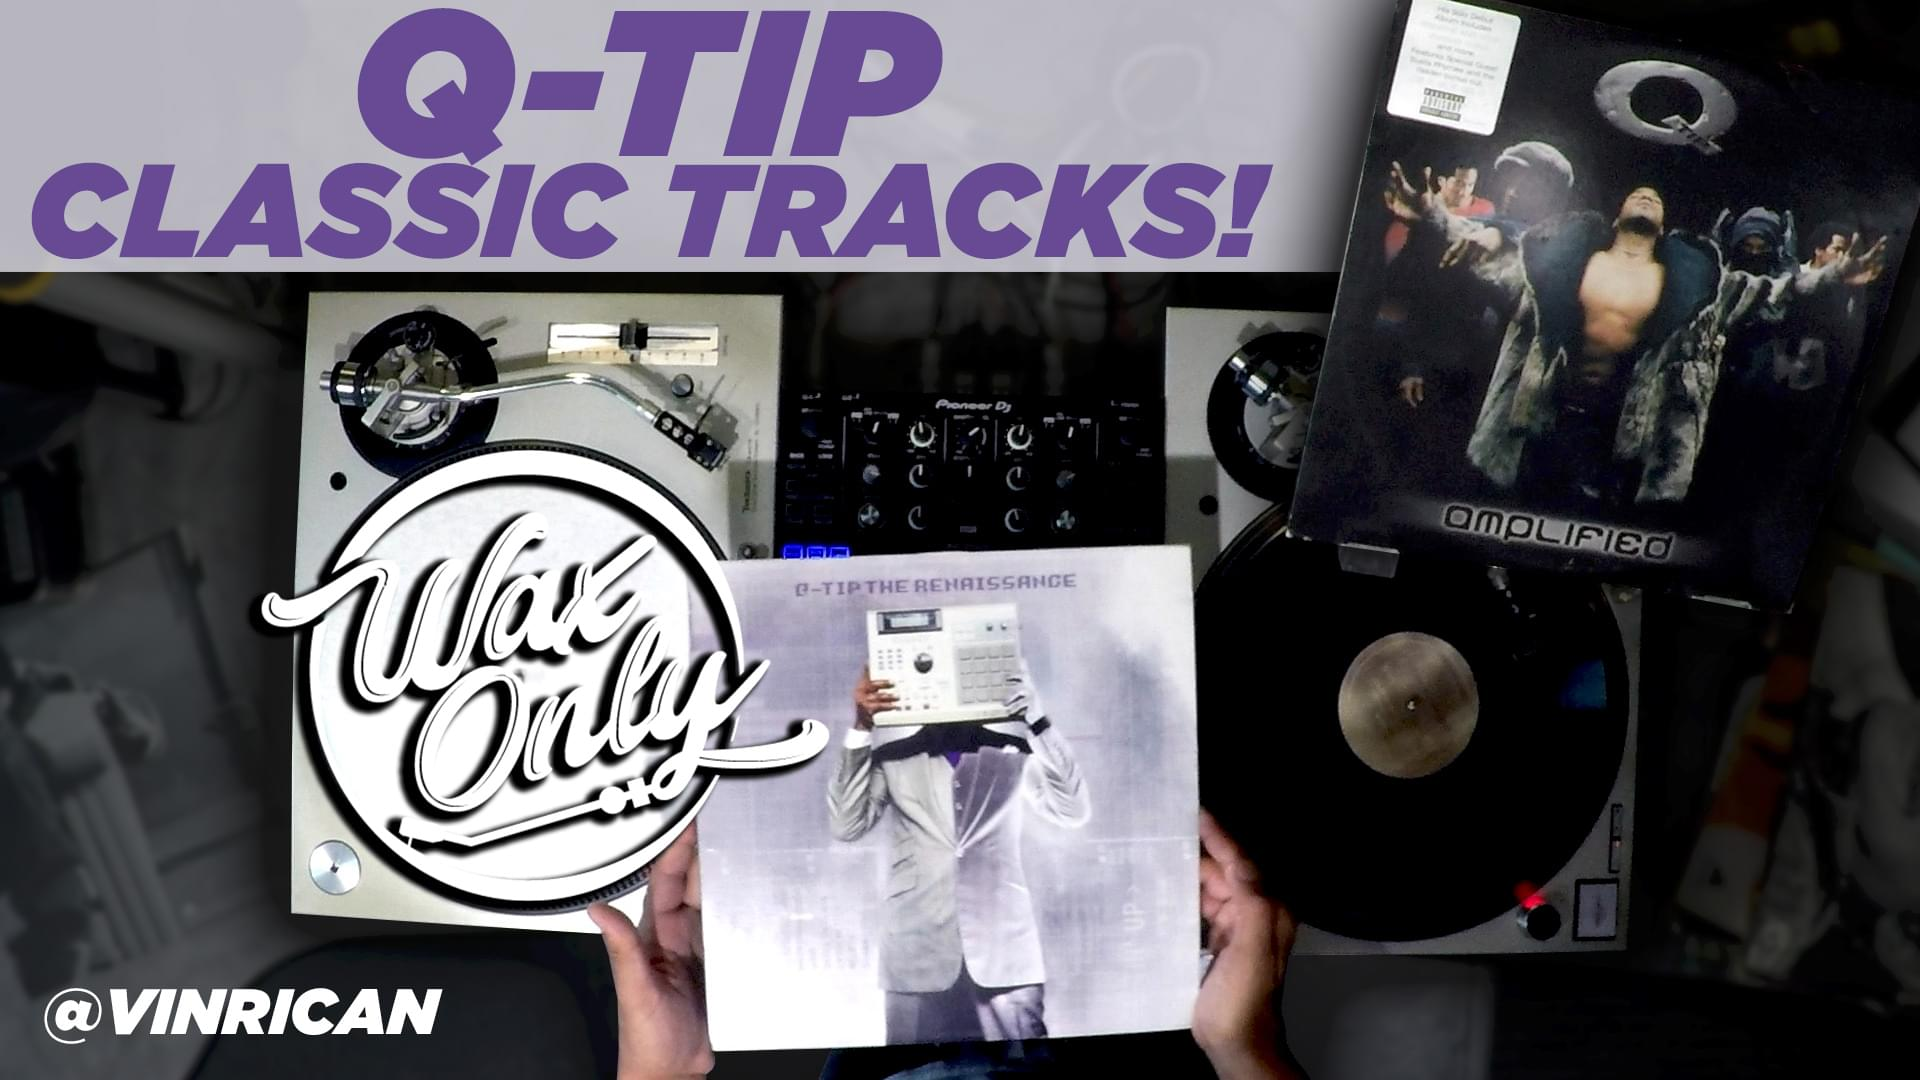 #WAXONLY: Celebrate Q-Tip's Birthday With Samples Used On Tip's Classic Tracks